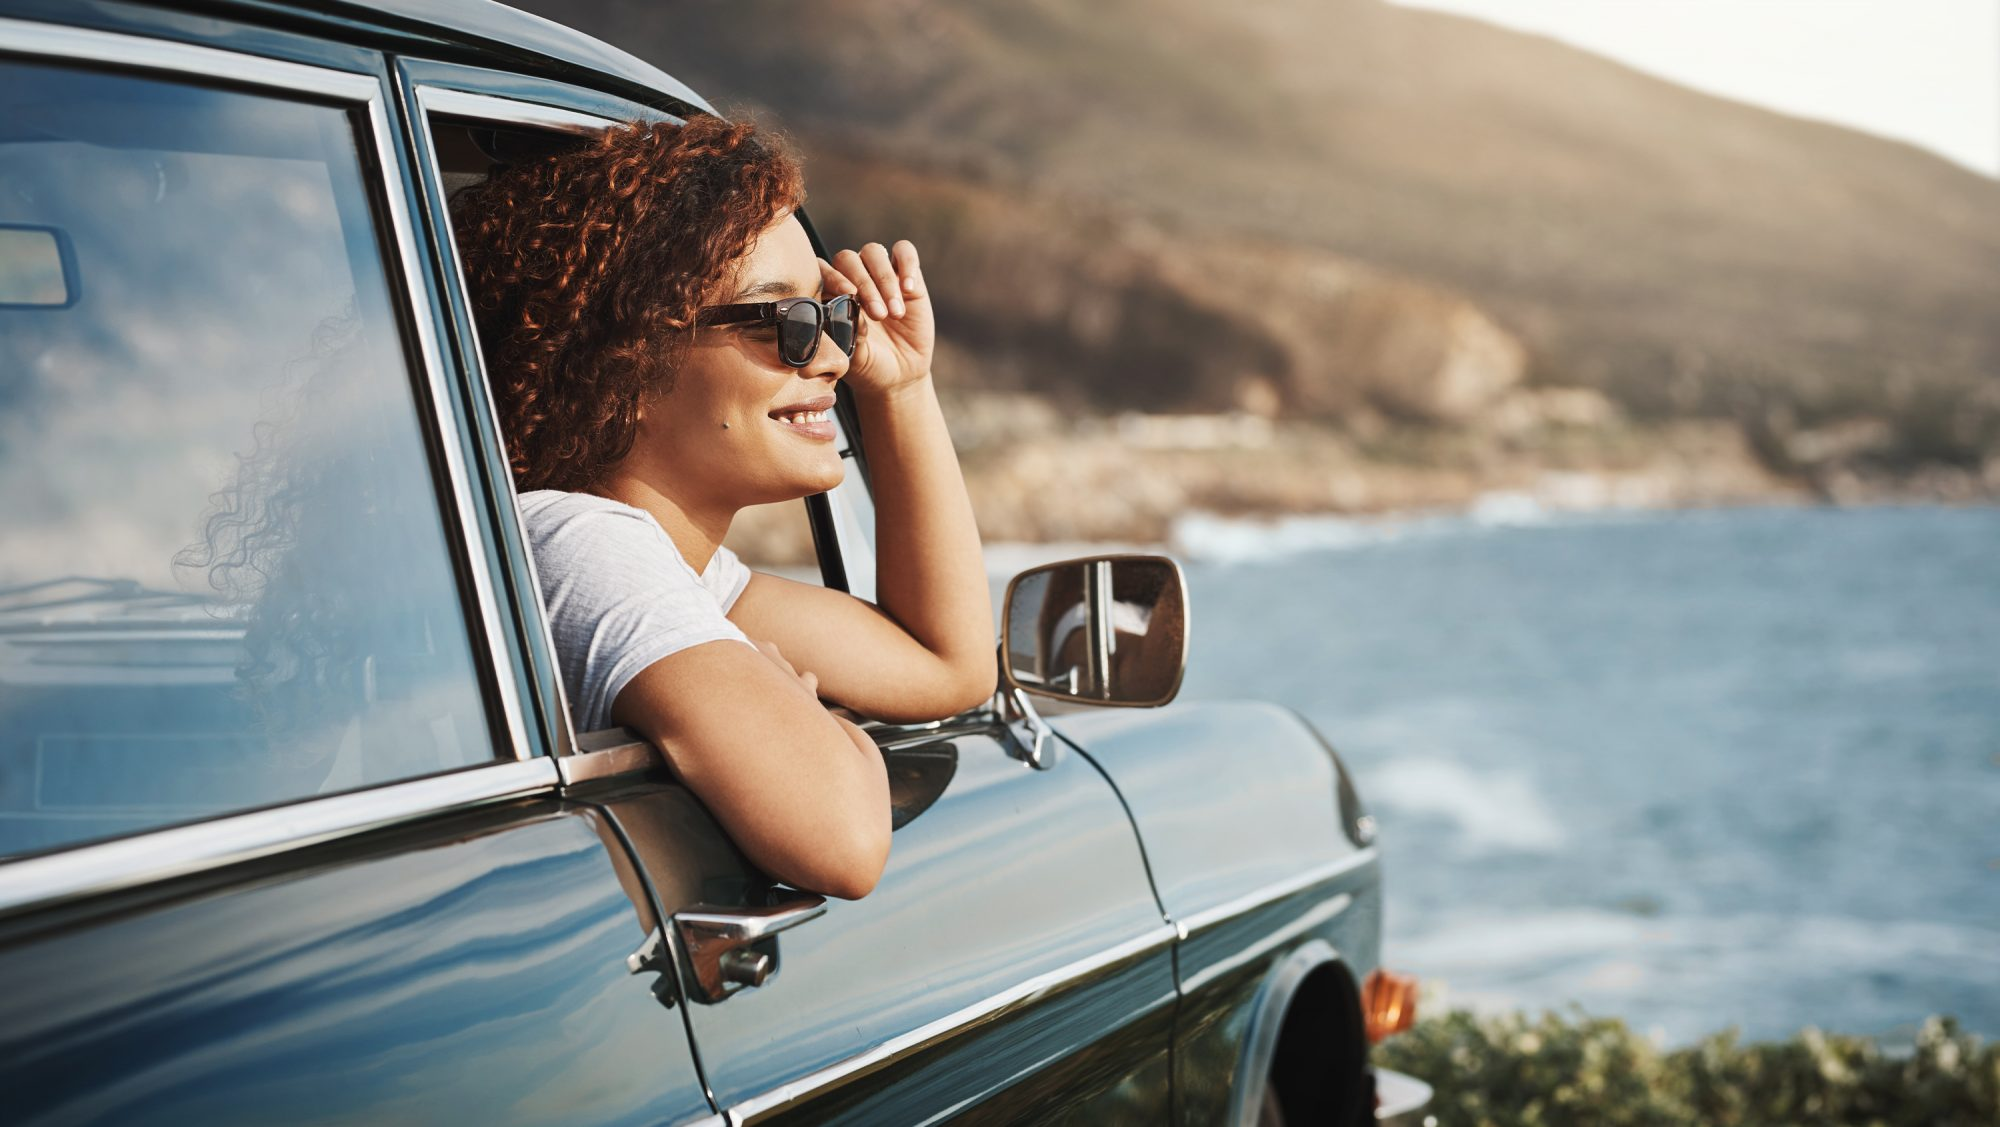 woman in car: fourth of july travel